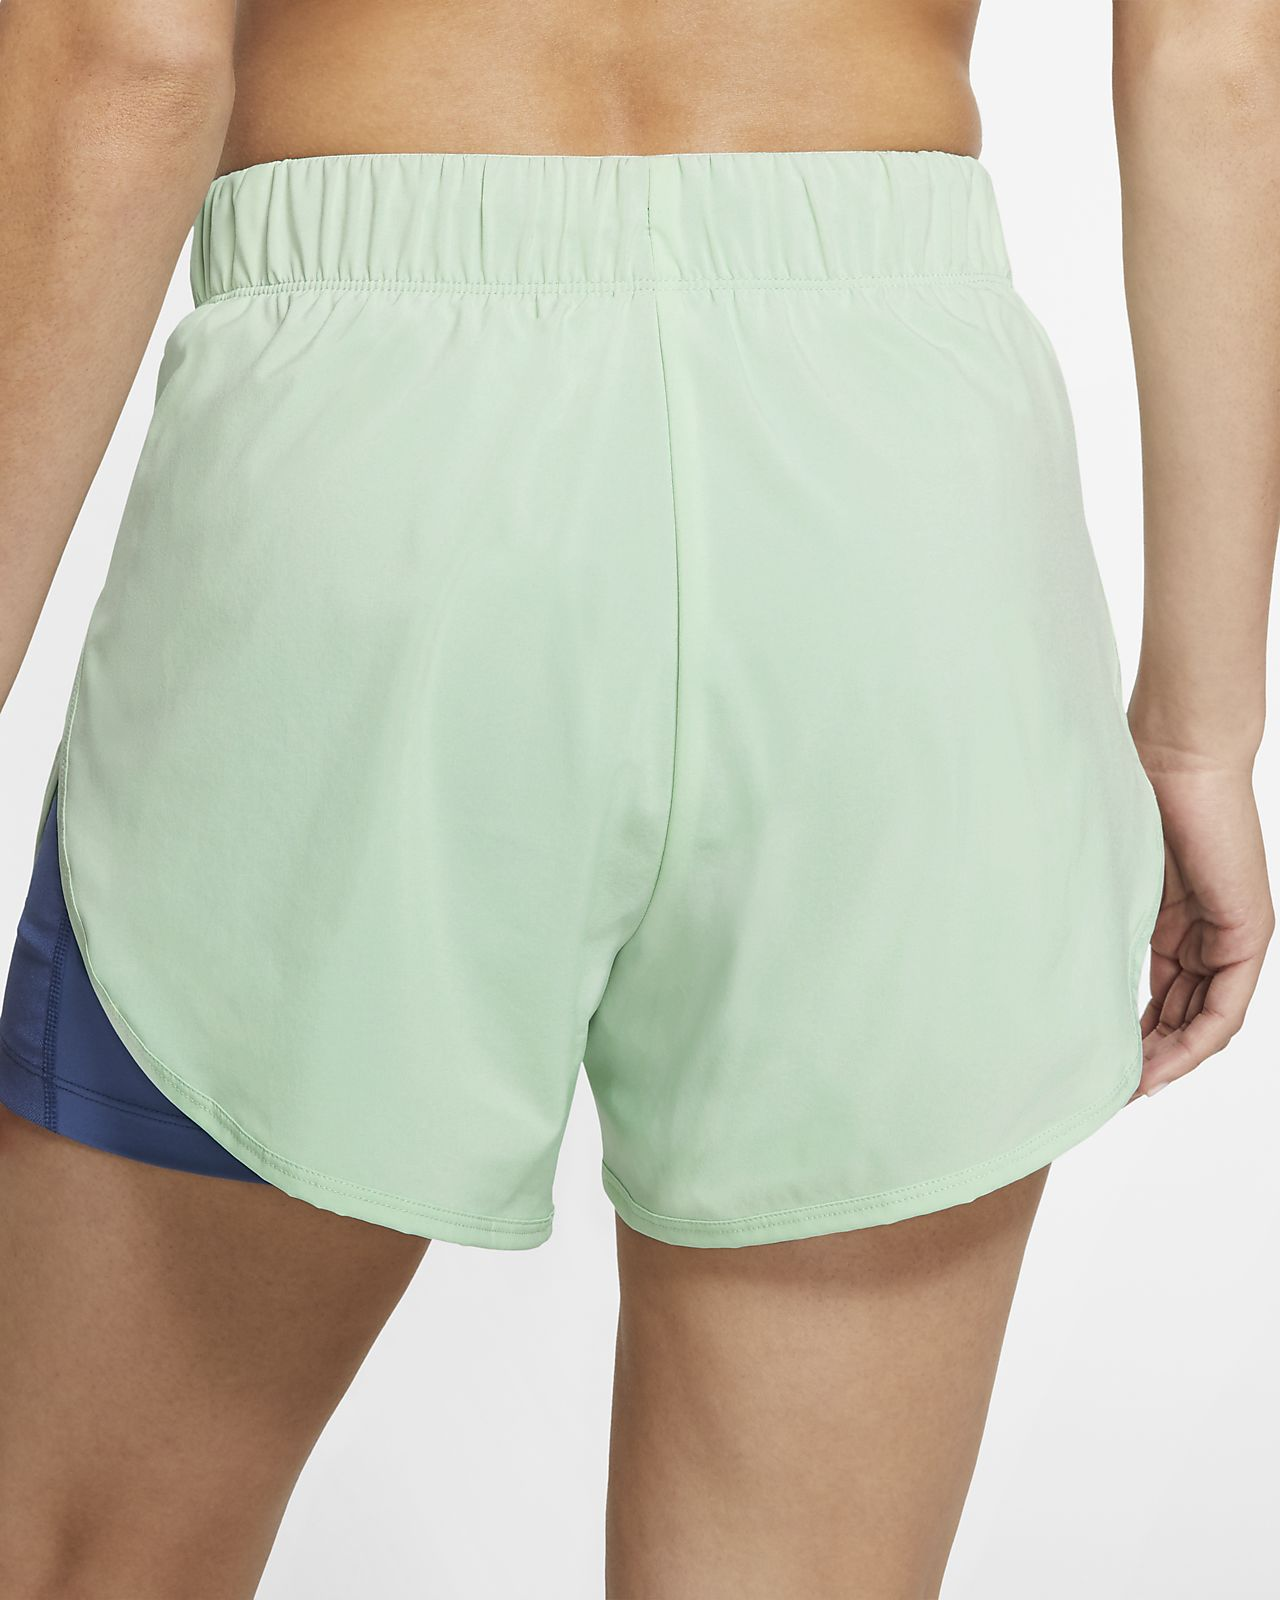 9511fad066 Nike Flex Women's 2-in-1 Training Shorts. Nike.com AU